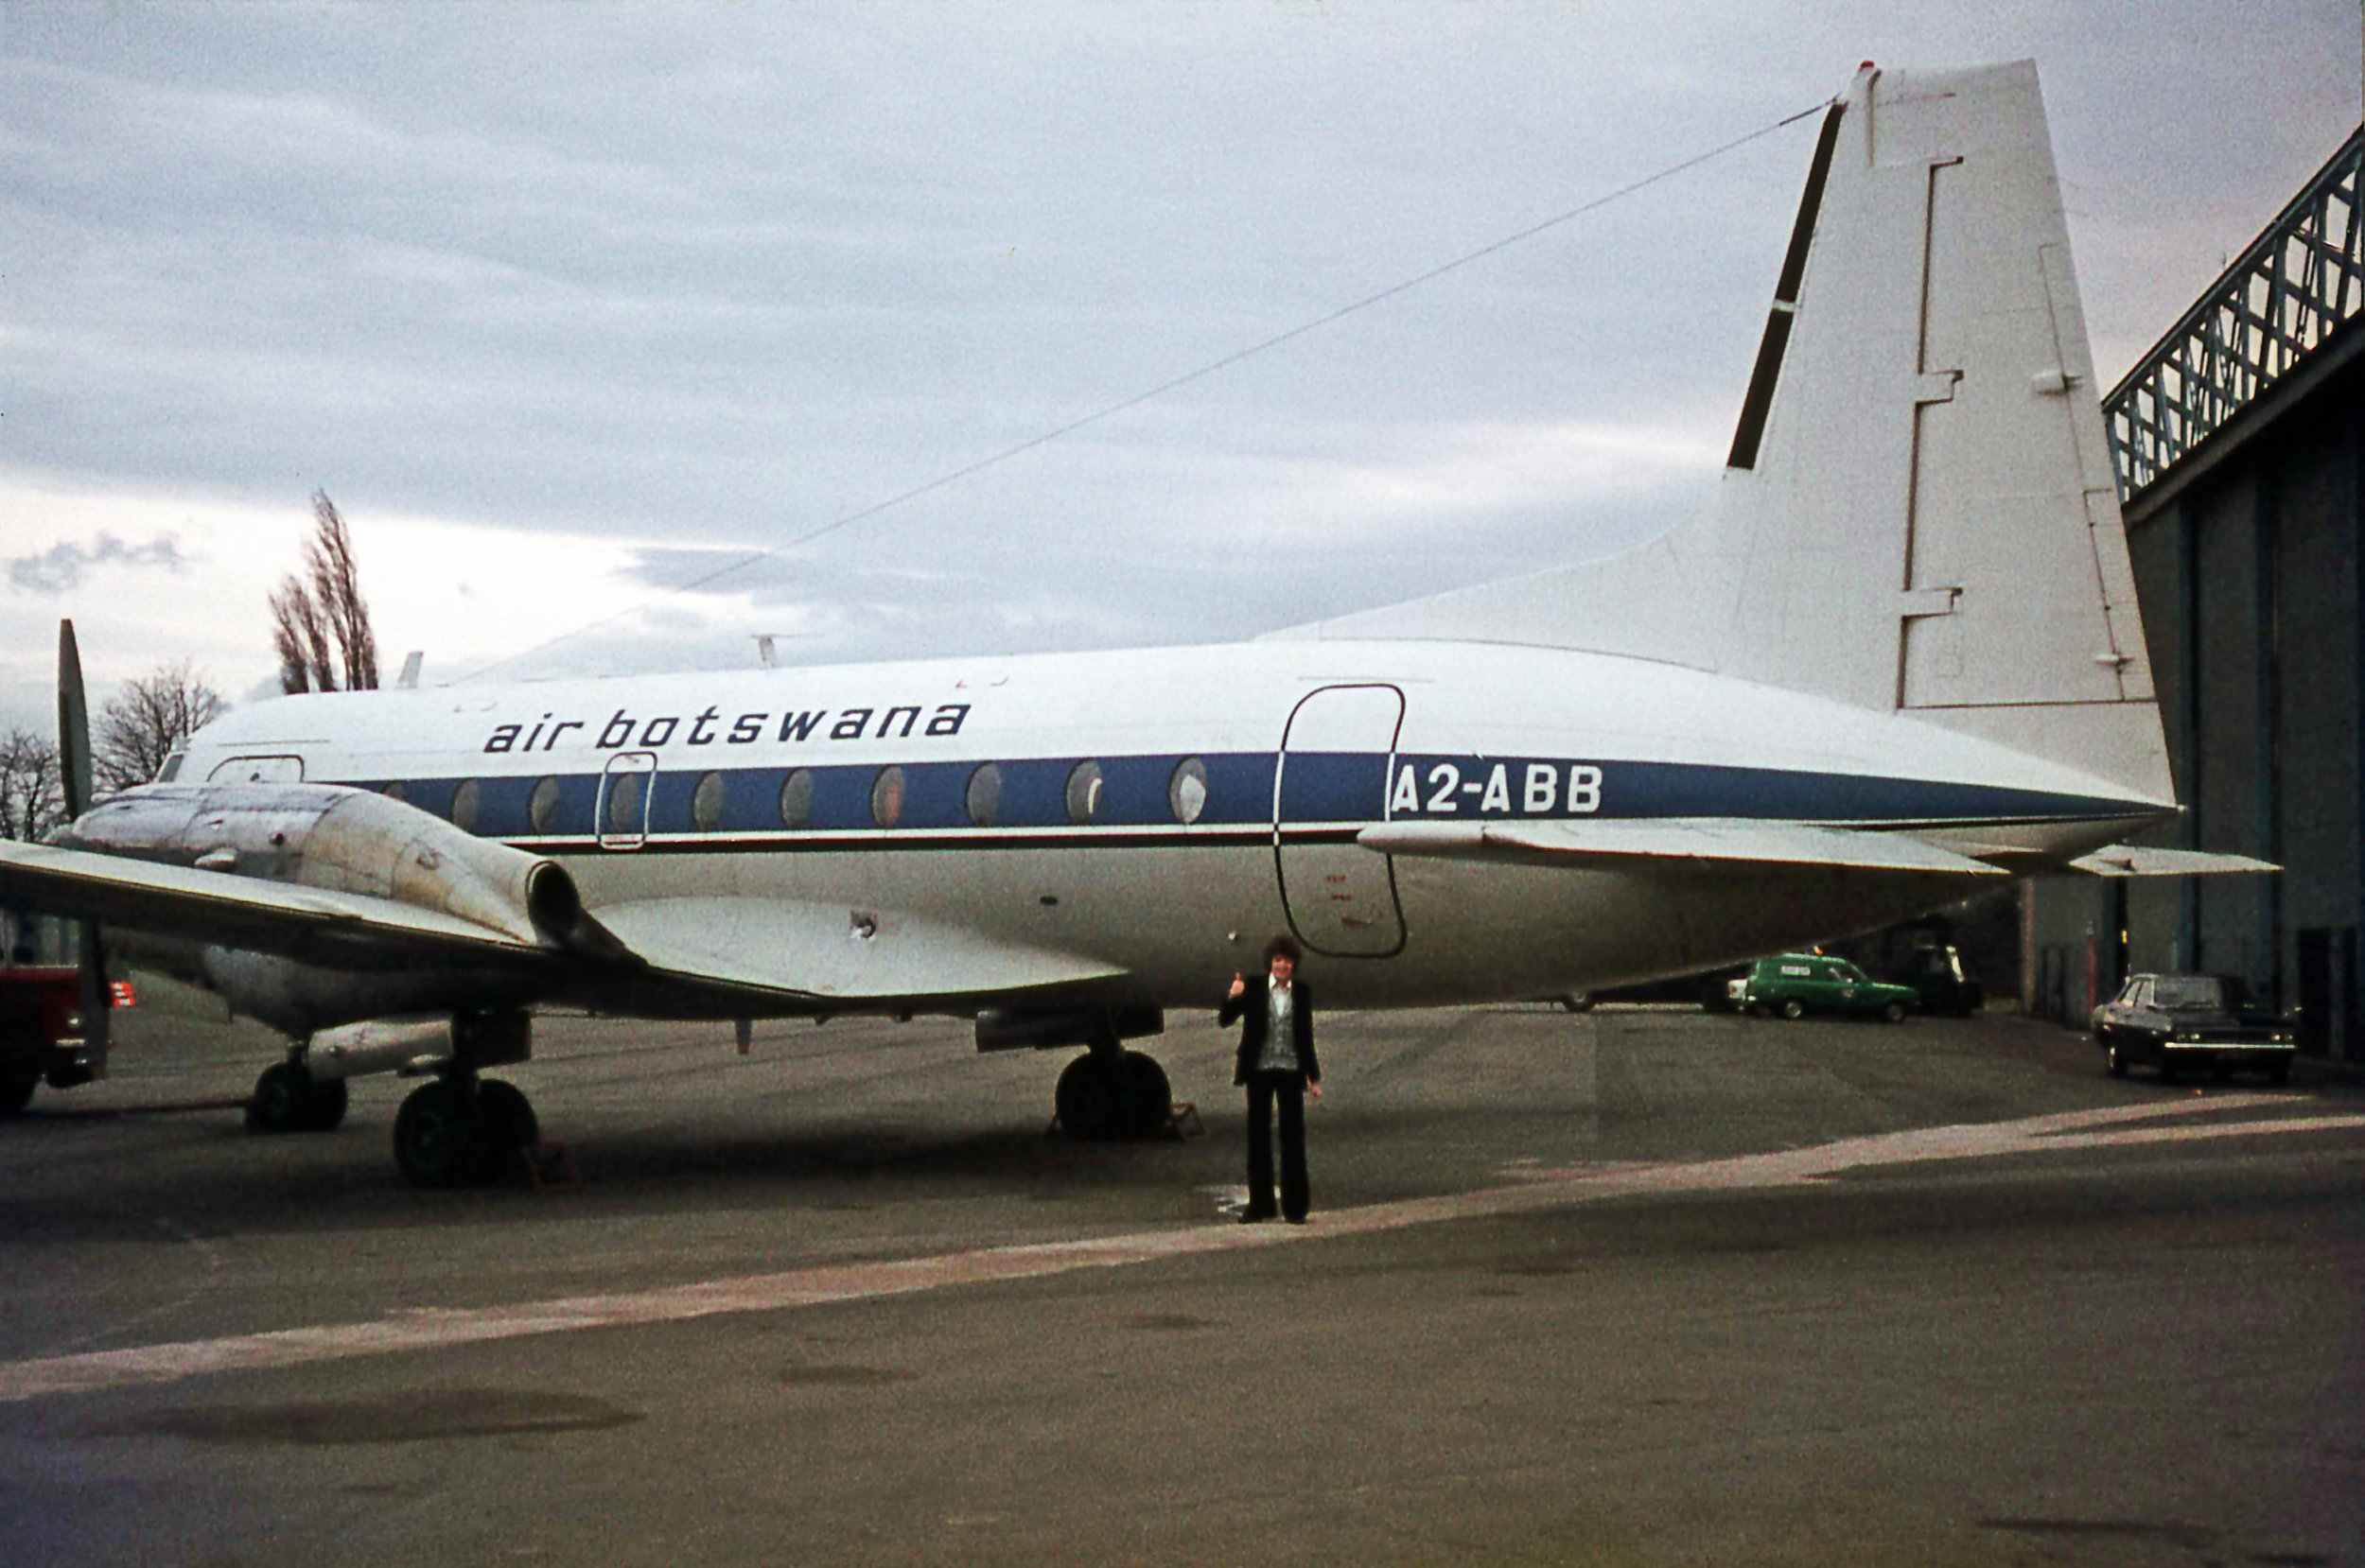 Air Botswana Avro 748 A2-ABB is seen here outside of Dan Air's Hangar 4 in April 1976. My apologies for doing a bit of photo bombing on the photo…goodness me… Get your hair cut young man!!